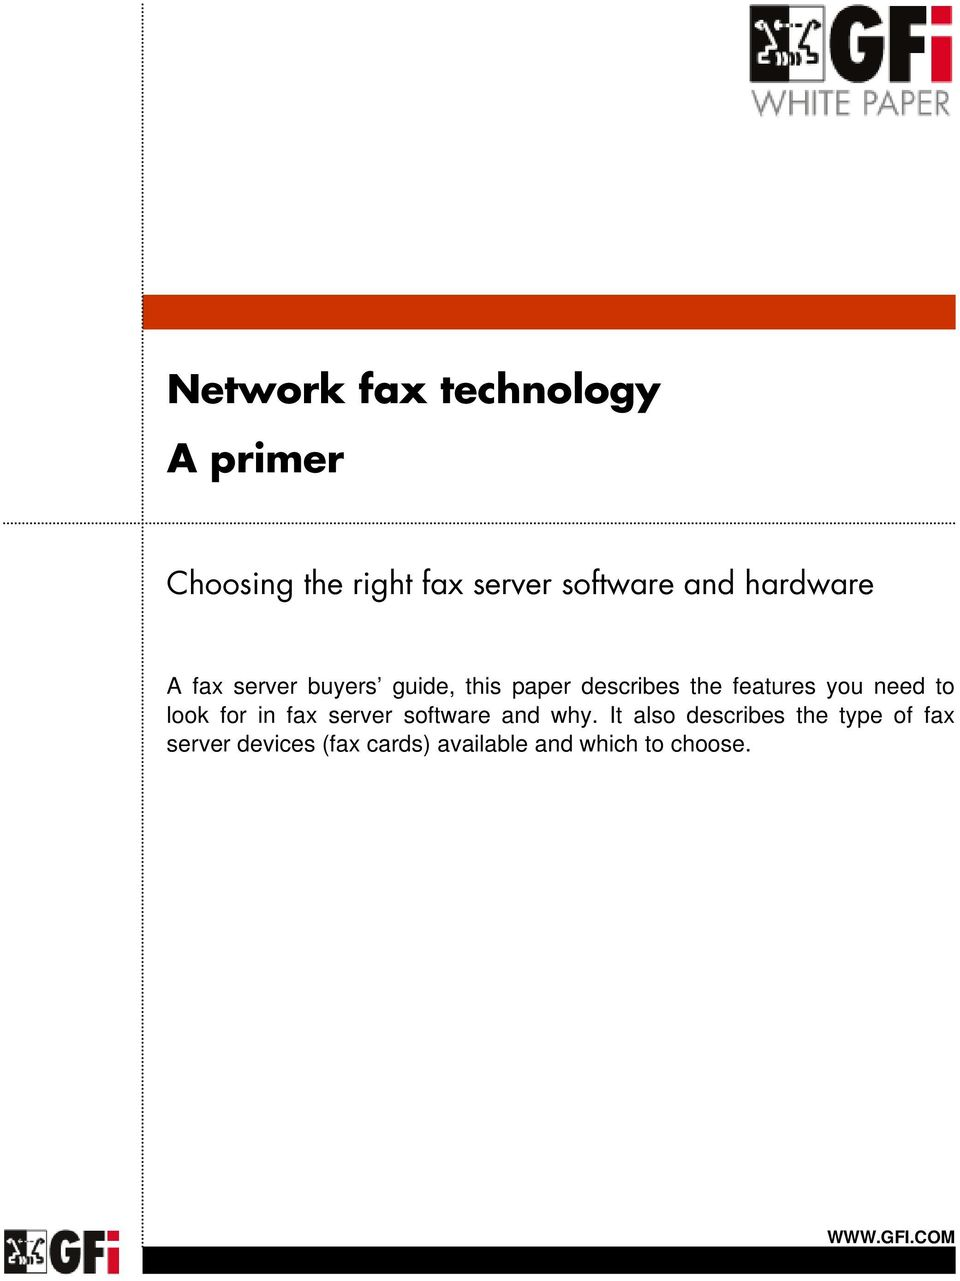 features you need to look for in fax server software and why.